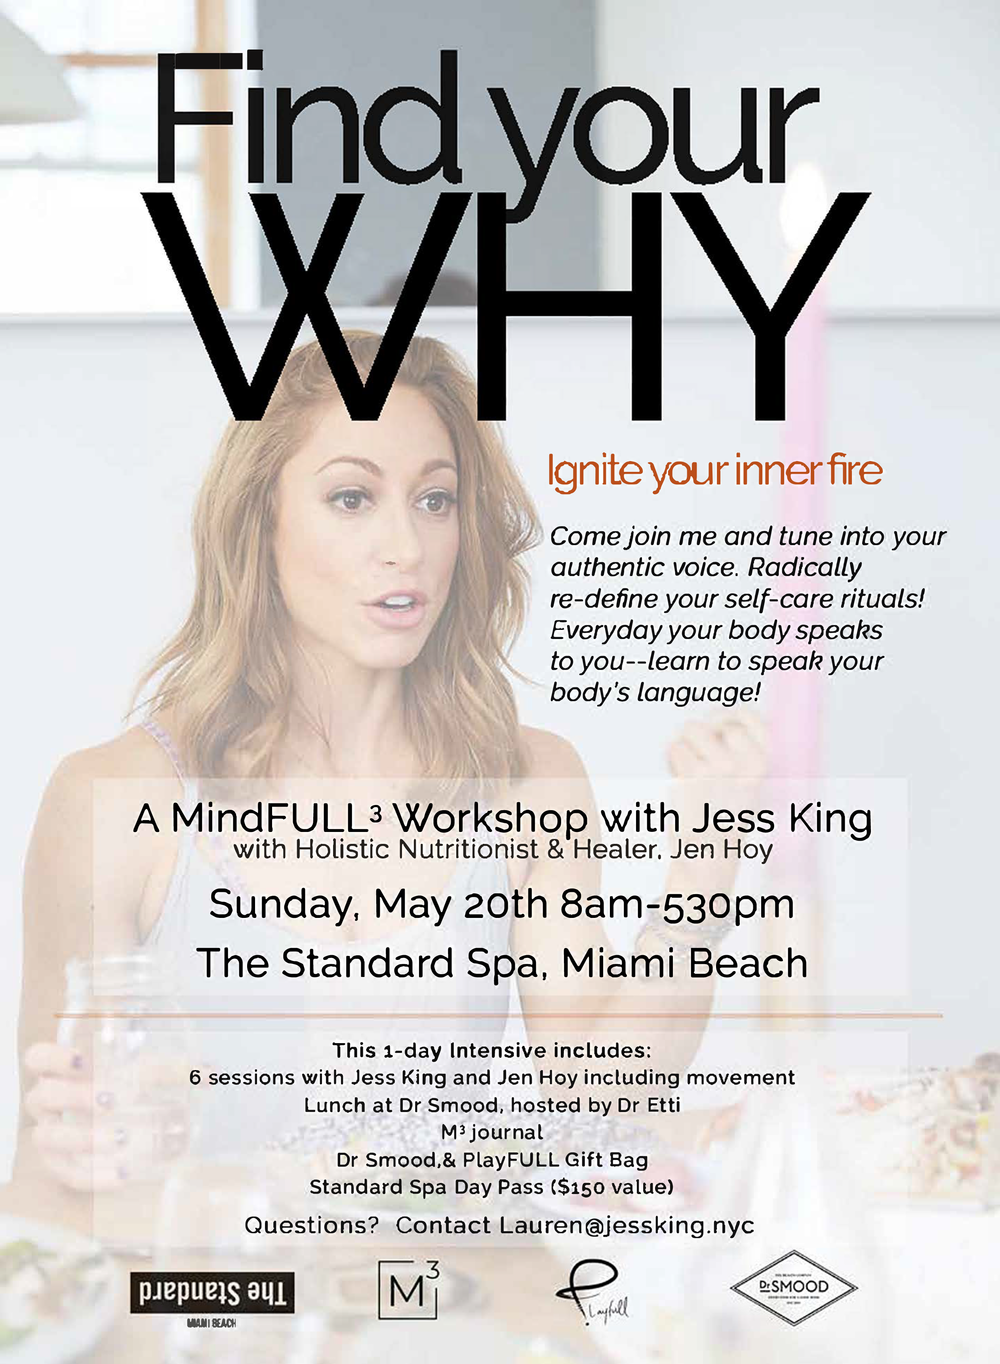 MAY 20 | A Mindfull3 Workshop with Jess King - Join Dr. Etti as she hosts lunch at Dr Smood and speaks about mindful eating and the relationship each of us has with food. Dr. Etti will explain how Dr Smood's products affect mind and mood for good, and the importance of tuning in to listen to the nutritional needs our bodies crave!8:00 A.M. - 5:30 P.M.